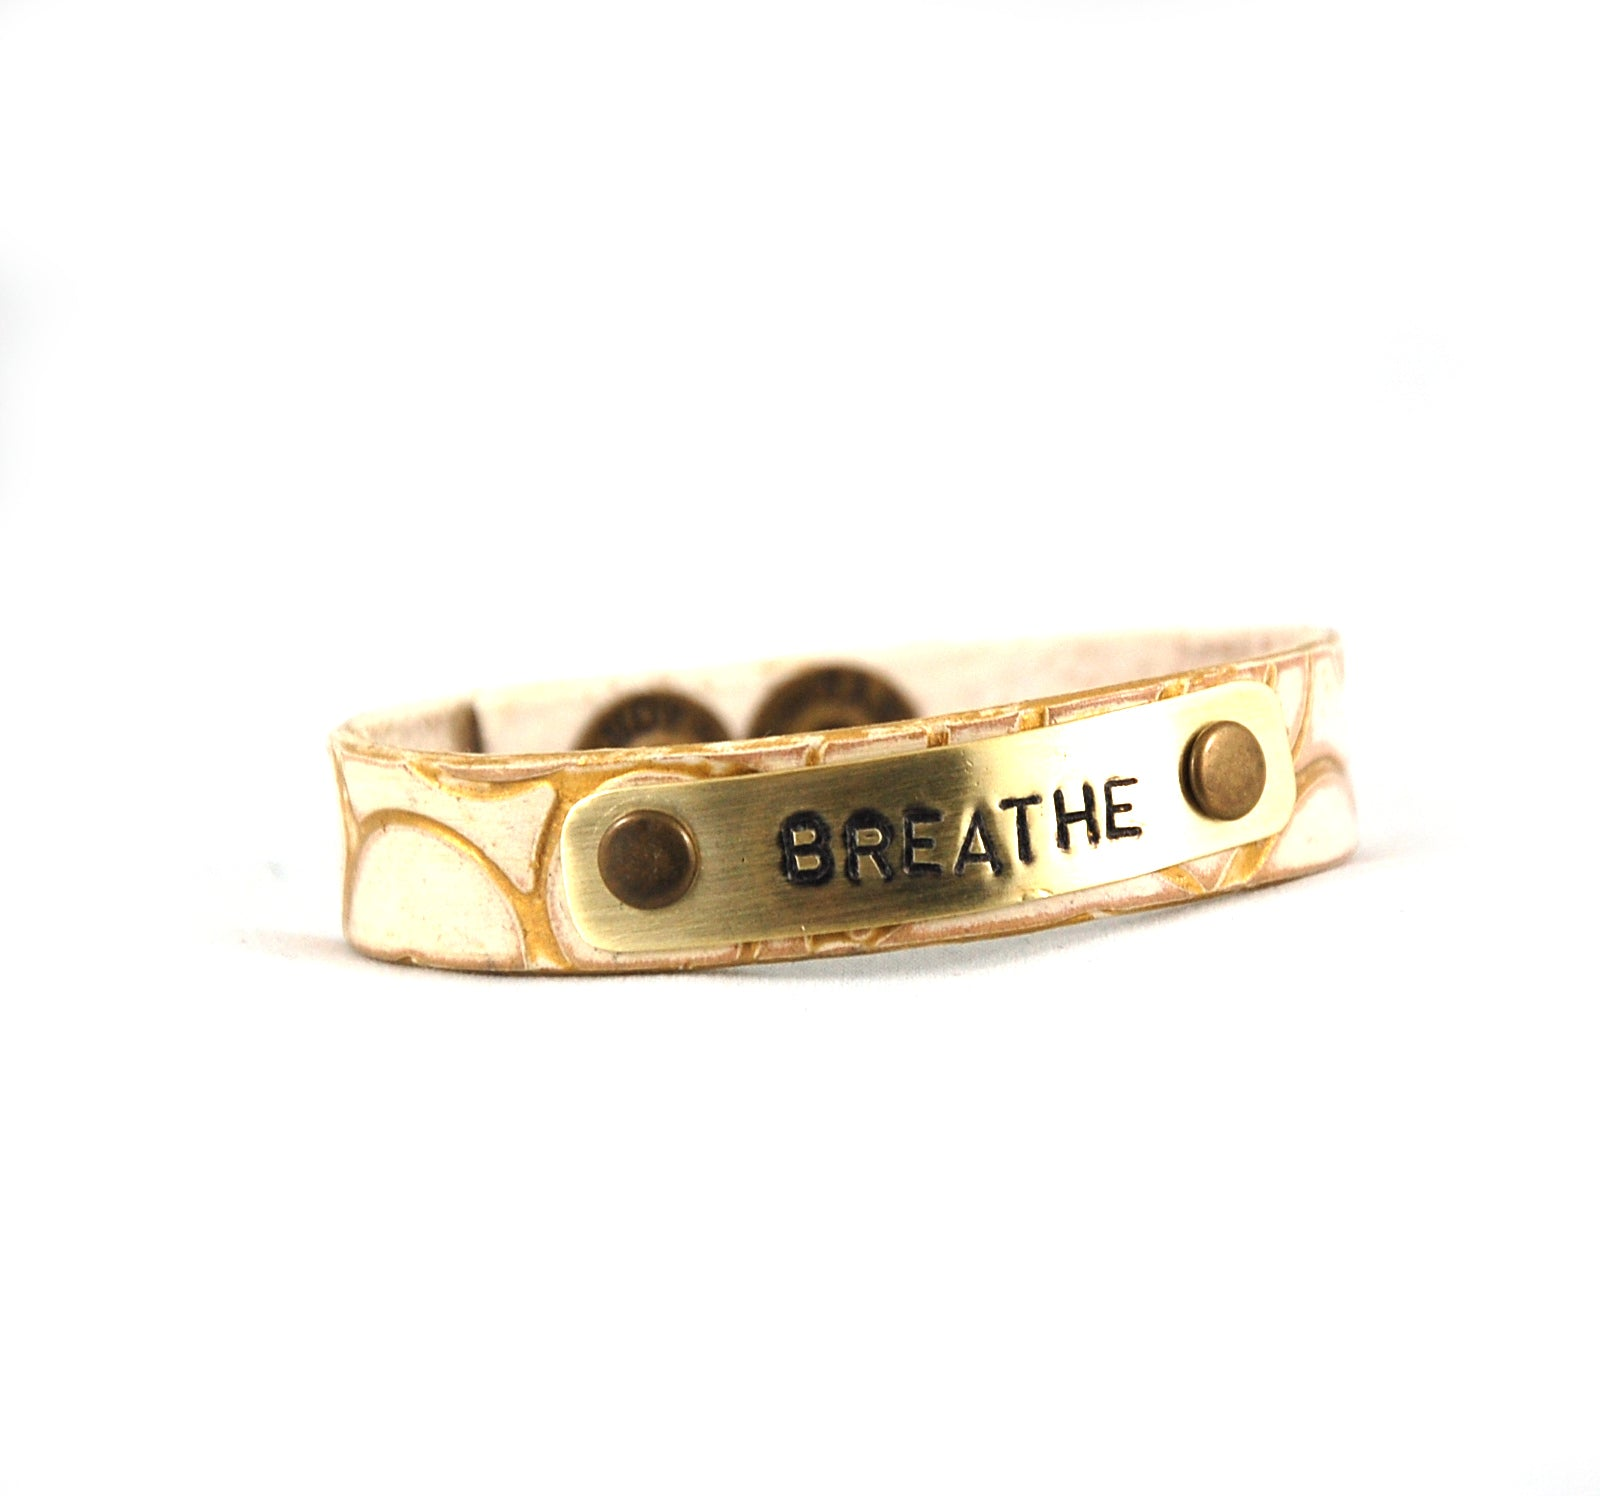 WM3 'Breathe' Leather Bracelet with Stamped Metal Plate - Fearless hART